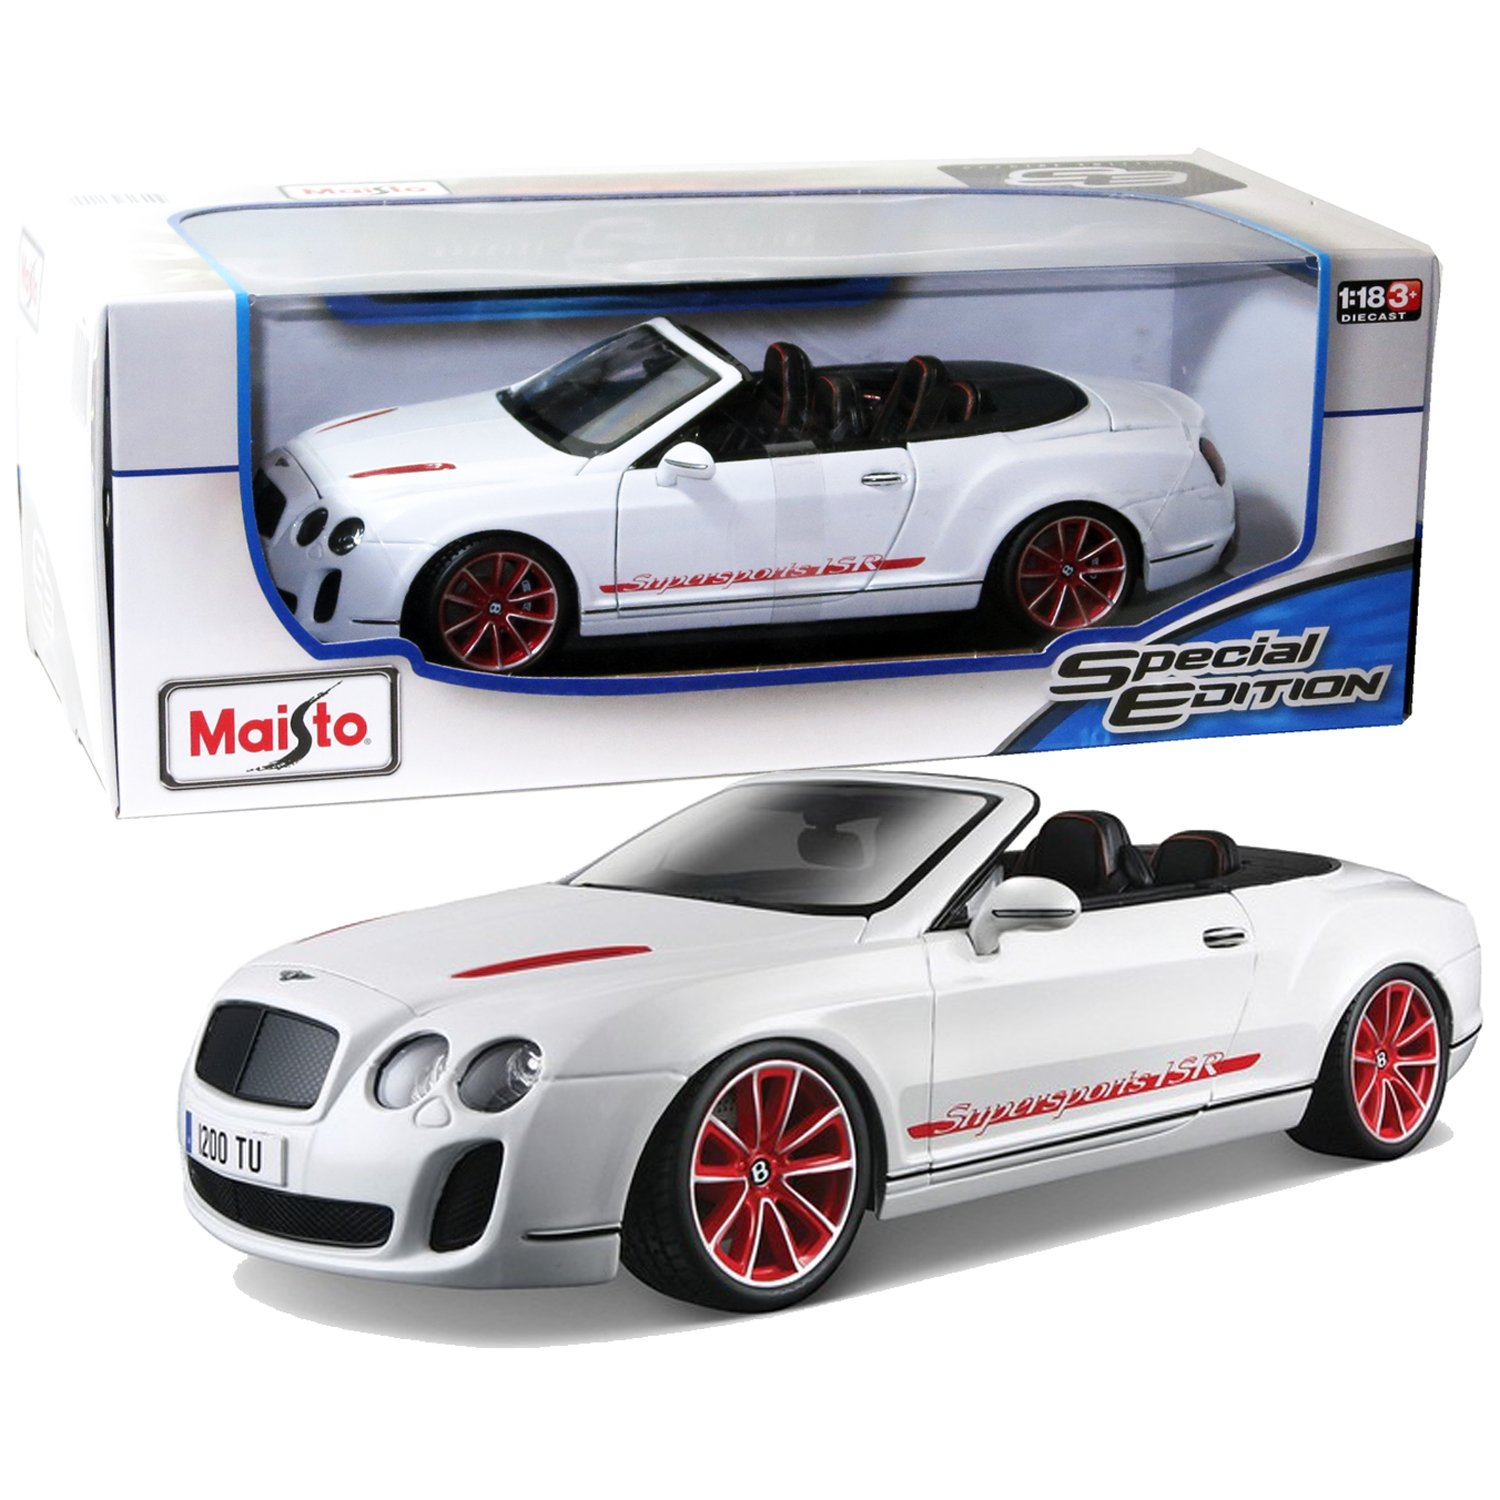 Maisto Year 2014 Special Edition Series 1 18 Scale Die Cast Car Set White Color Grand Tourer GT BENTLEY CONTINENTAL SUPERSPORTS CONVERTIBLE ISR with Display Base Car Dimension 9 1 2 x 4 x 3